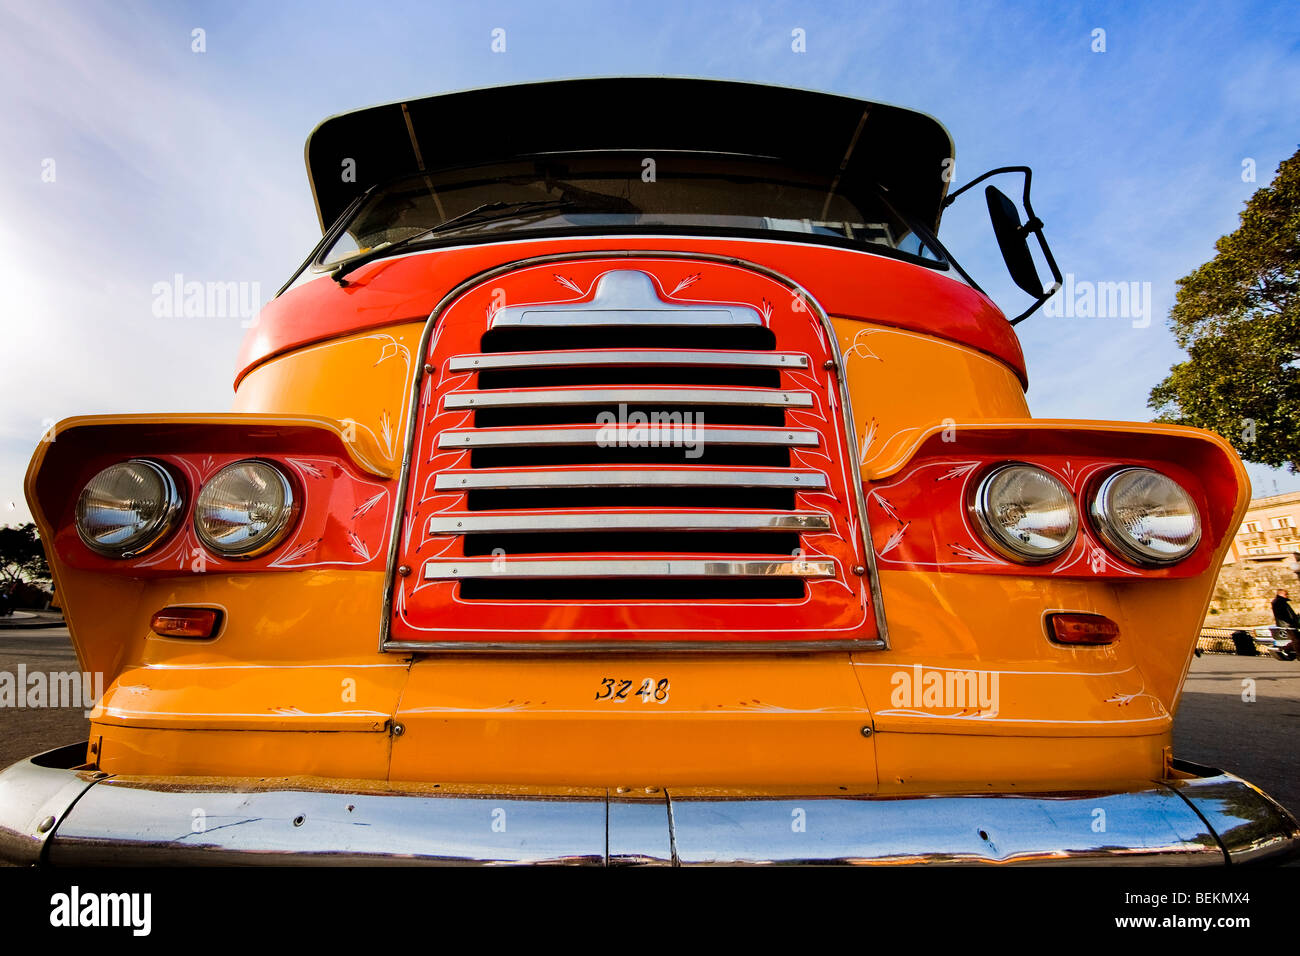 Old-fashioned retro grille of colorful bus - Stock Image